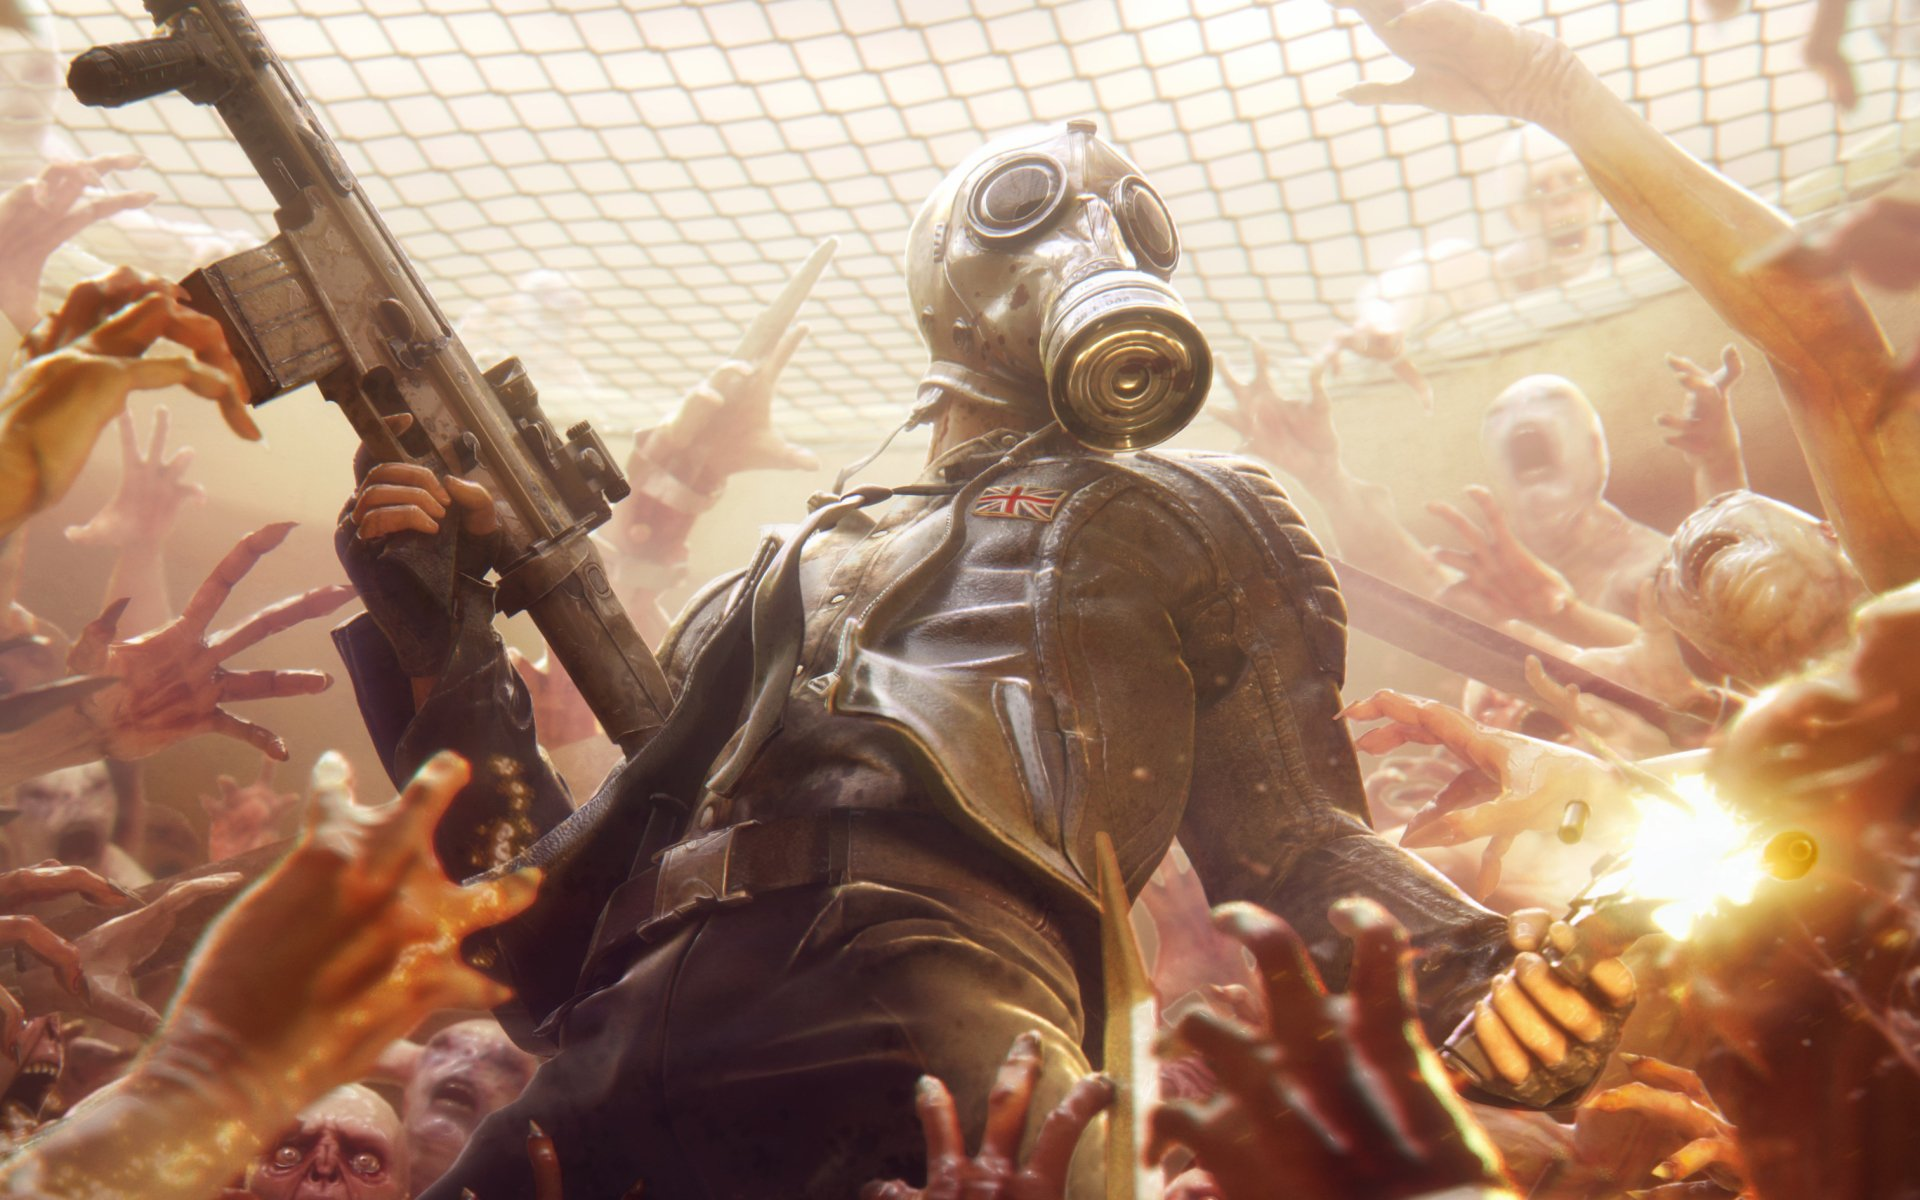 18 Killing Floor 2 Hd Wallpapers Background Images Wallpaper Abyss